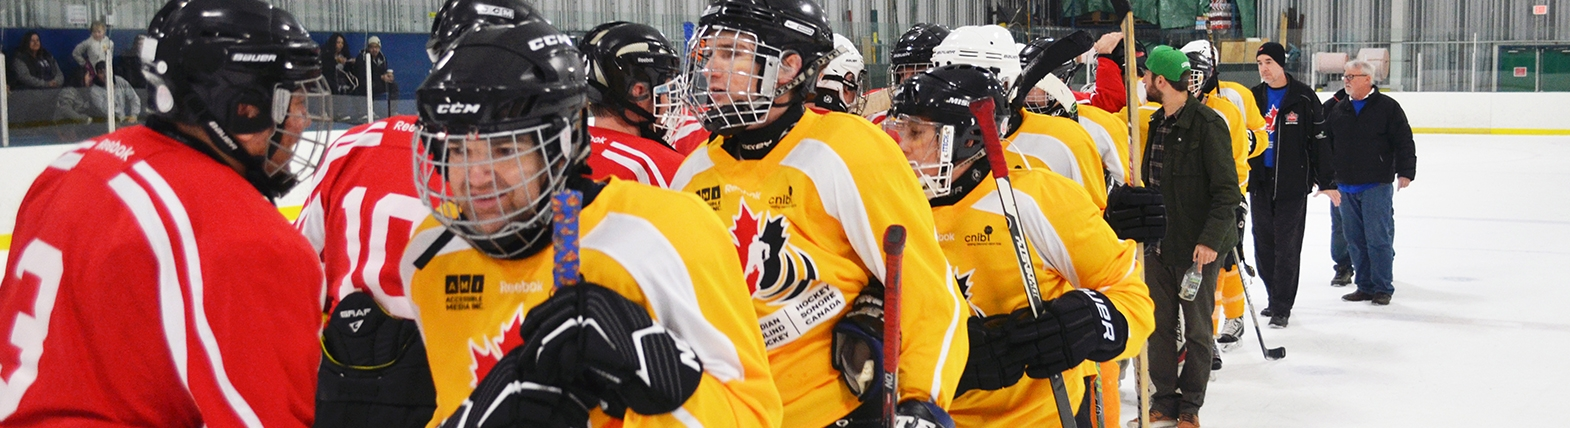 Listen To The 2019 Canadian Blind Hockey Tournament Accessible